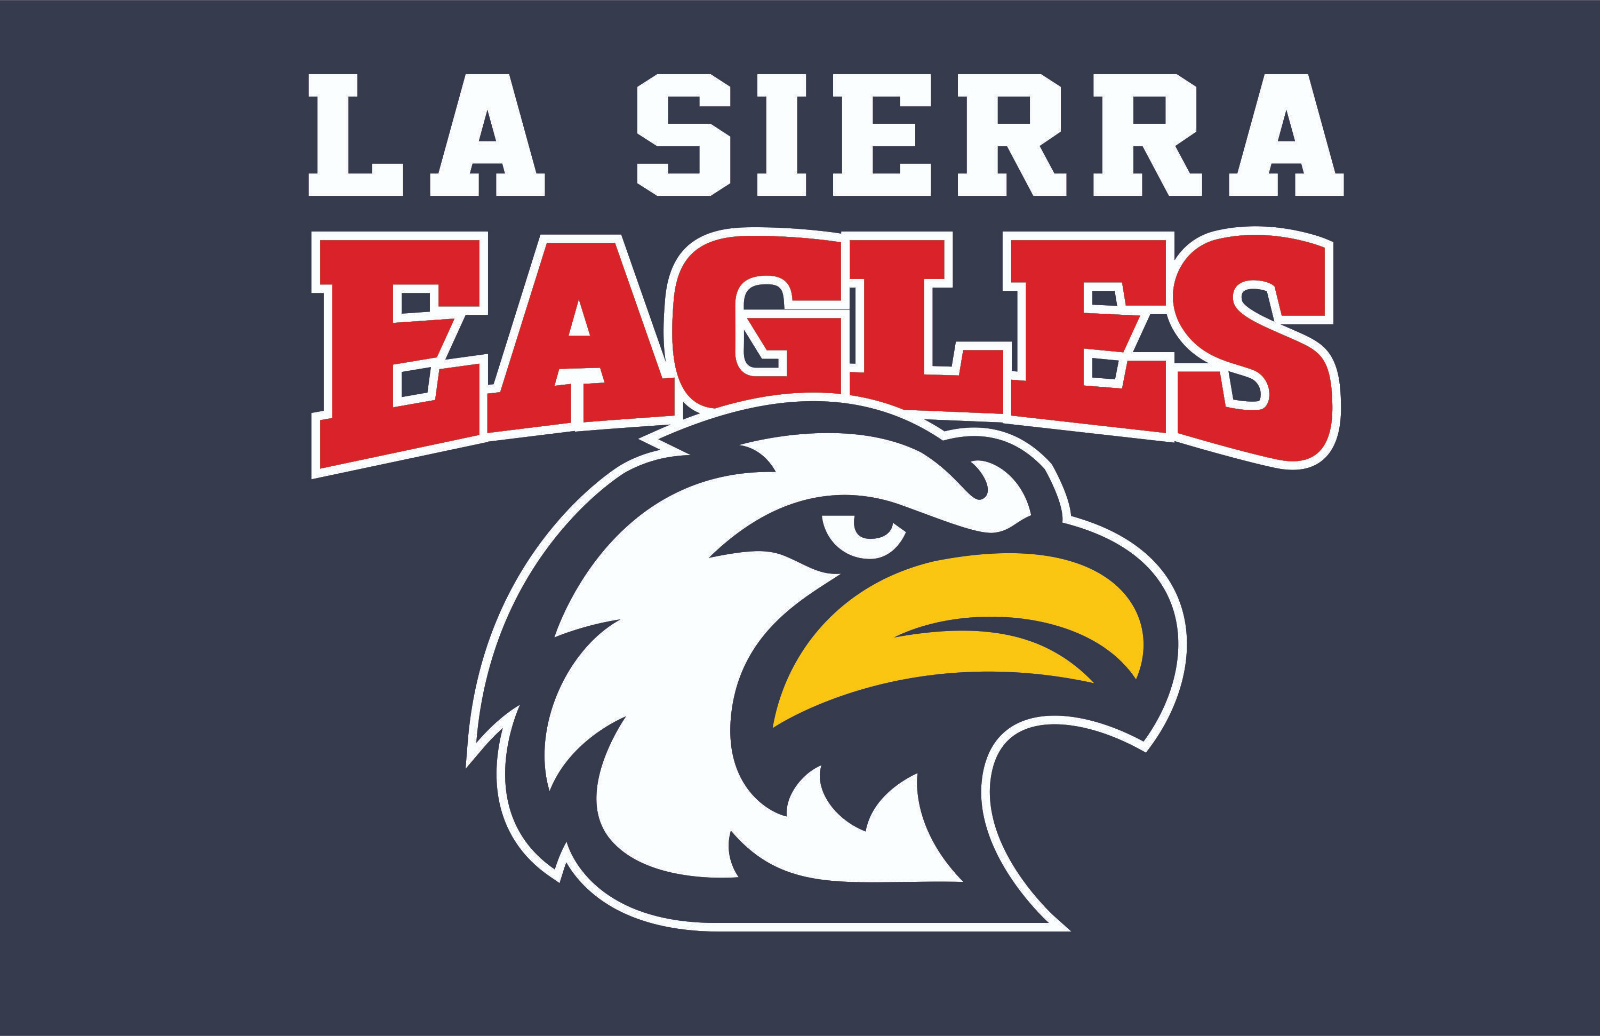 La Sierra's Homecoming and 50th Anniversary Celebration